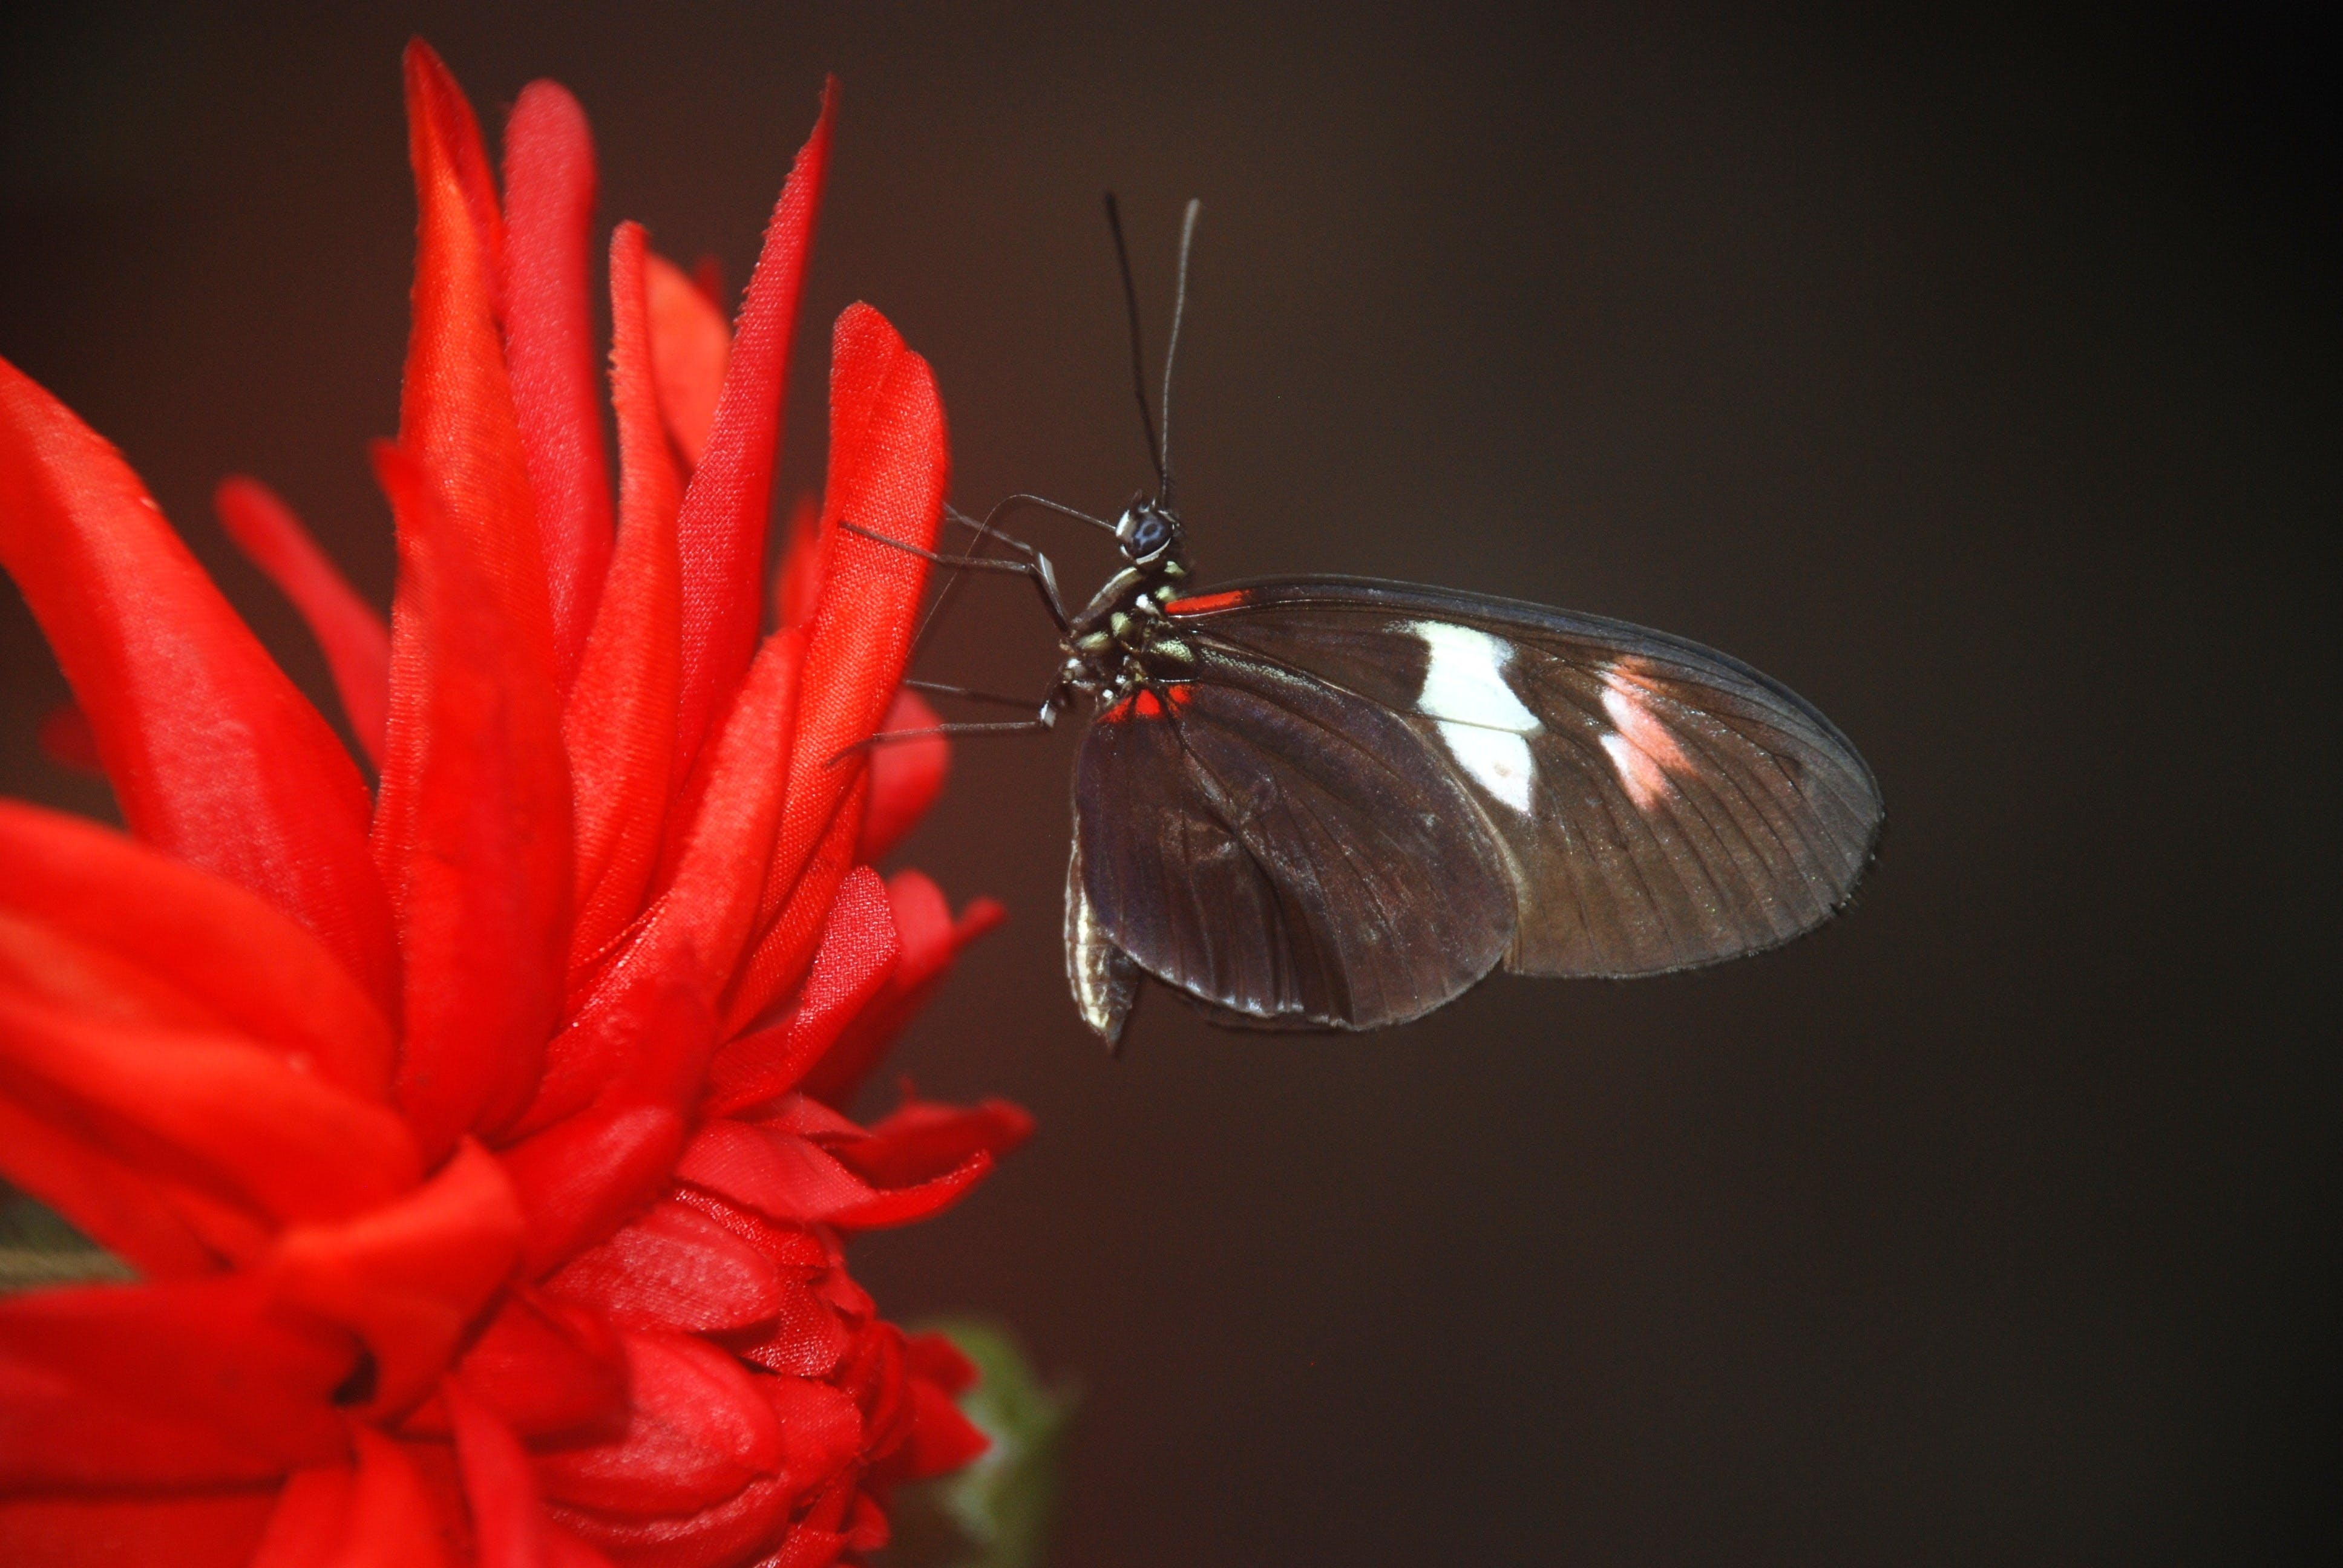 Black and White Butterfly on Red Multi Petaled Flower